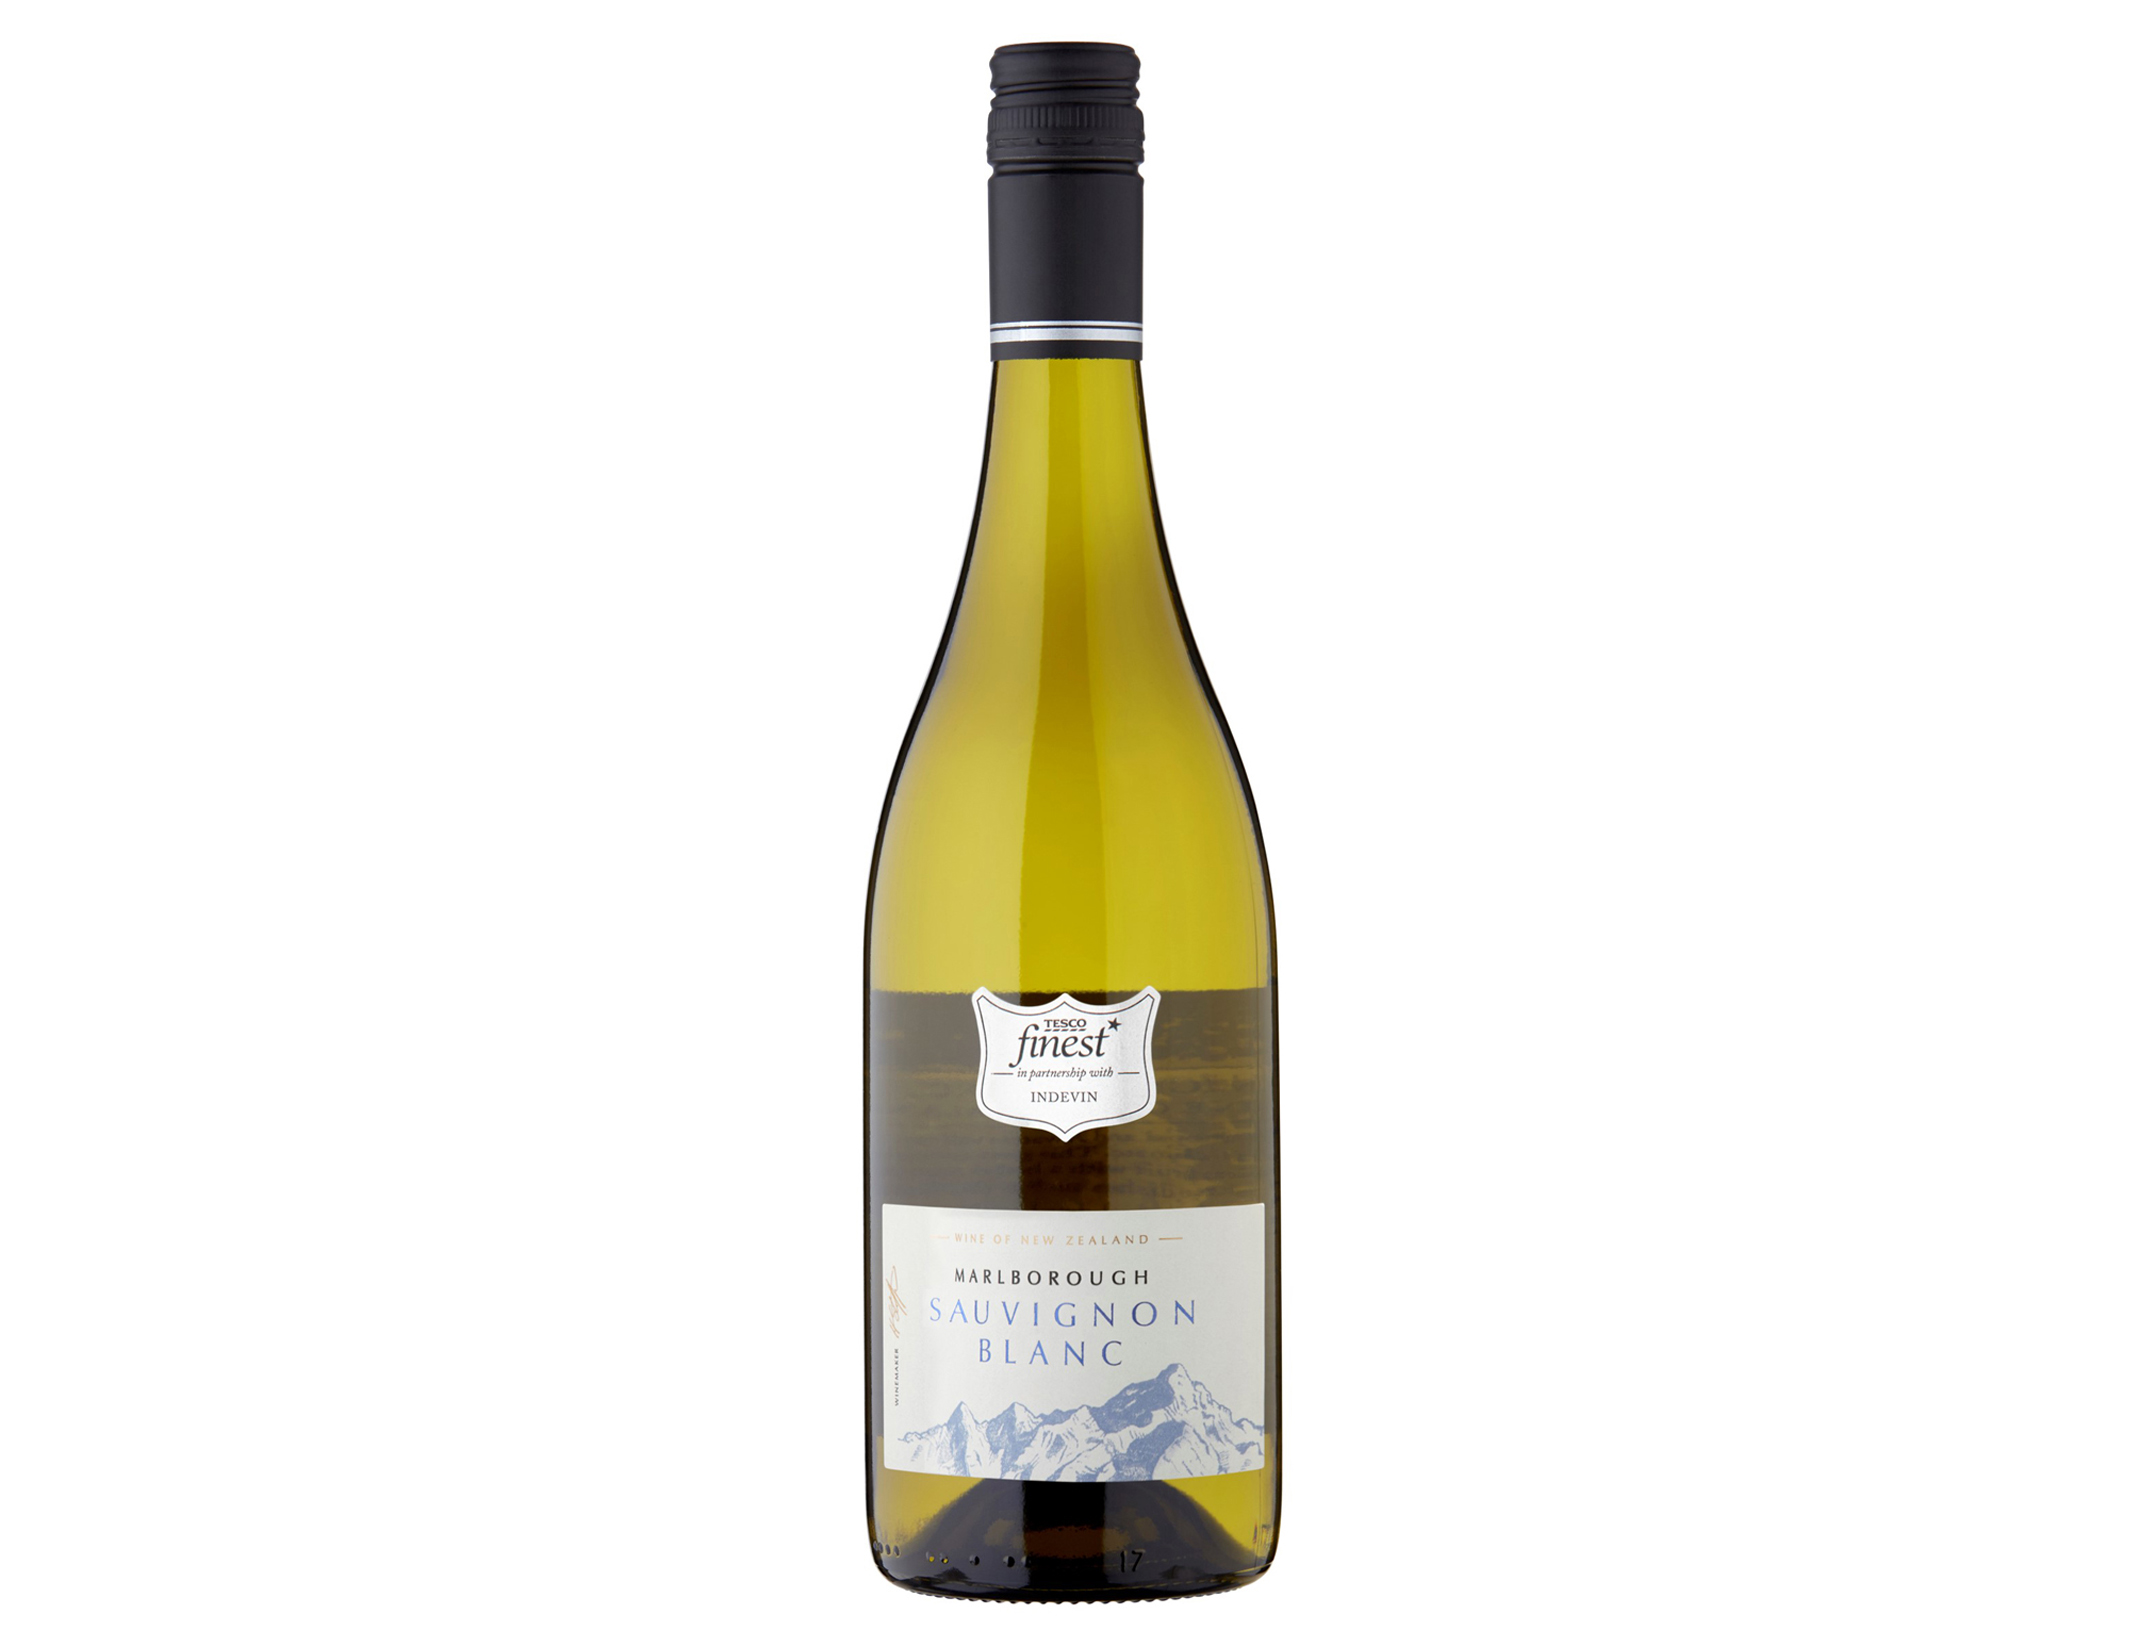 Tesco Finest Sauvignon Blanc, New Zealand